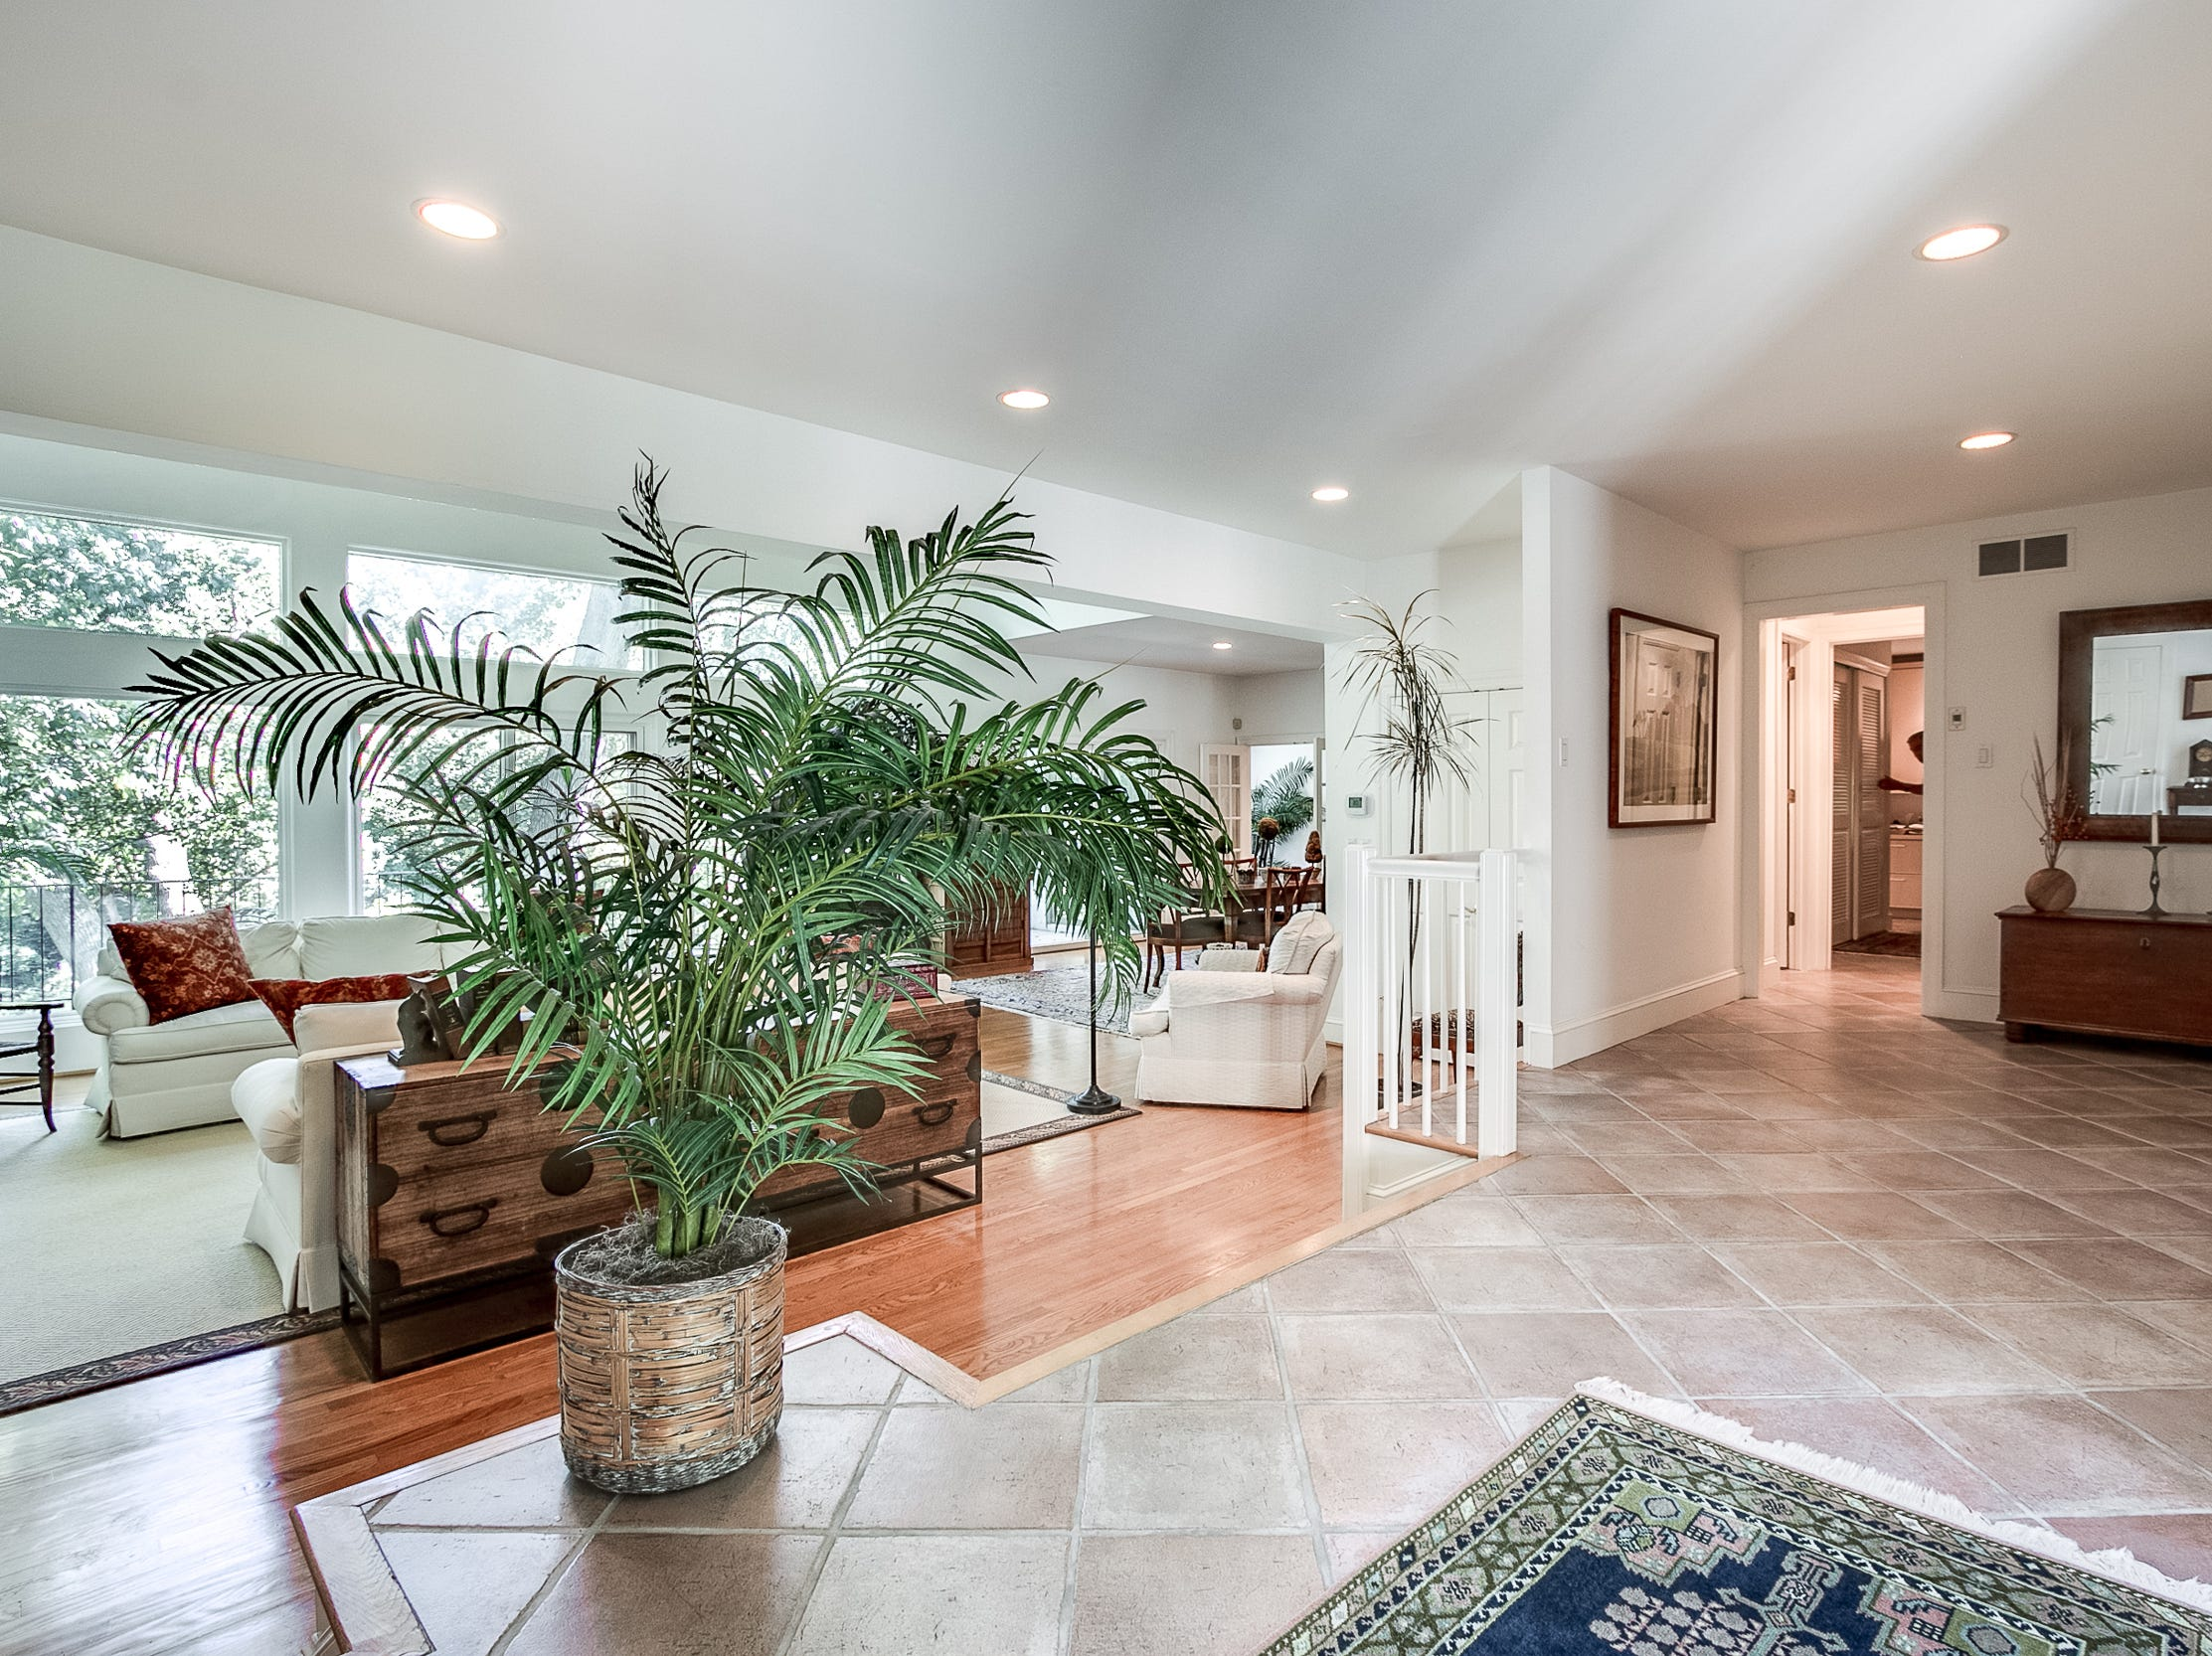 The foyer, paved in tiles, steps down to the living room at 7 Brandywine Falls in Wilmington.